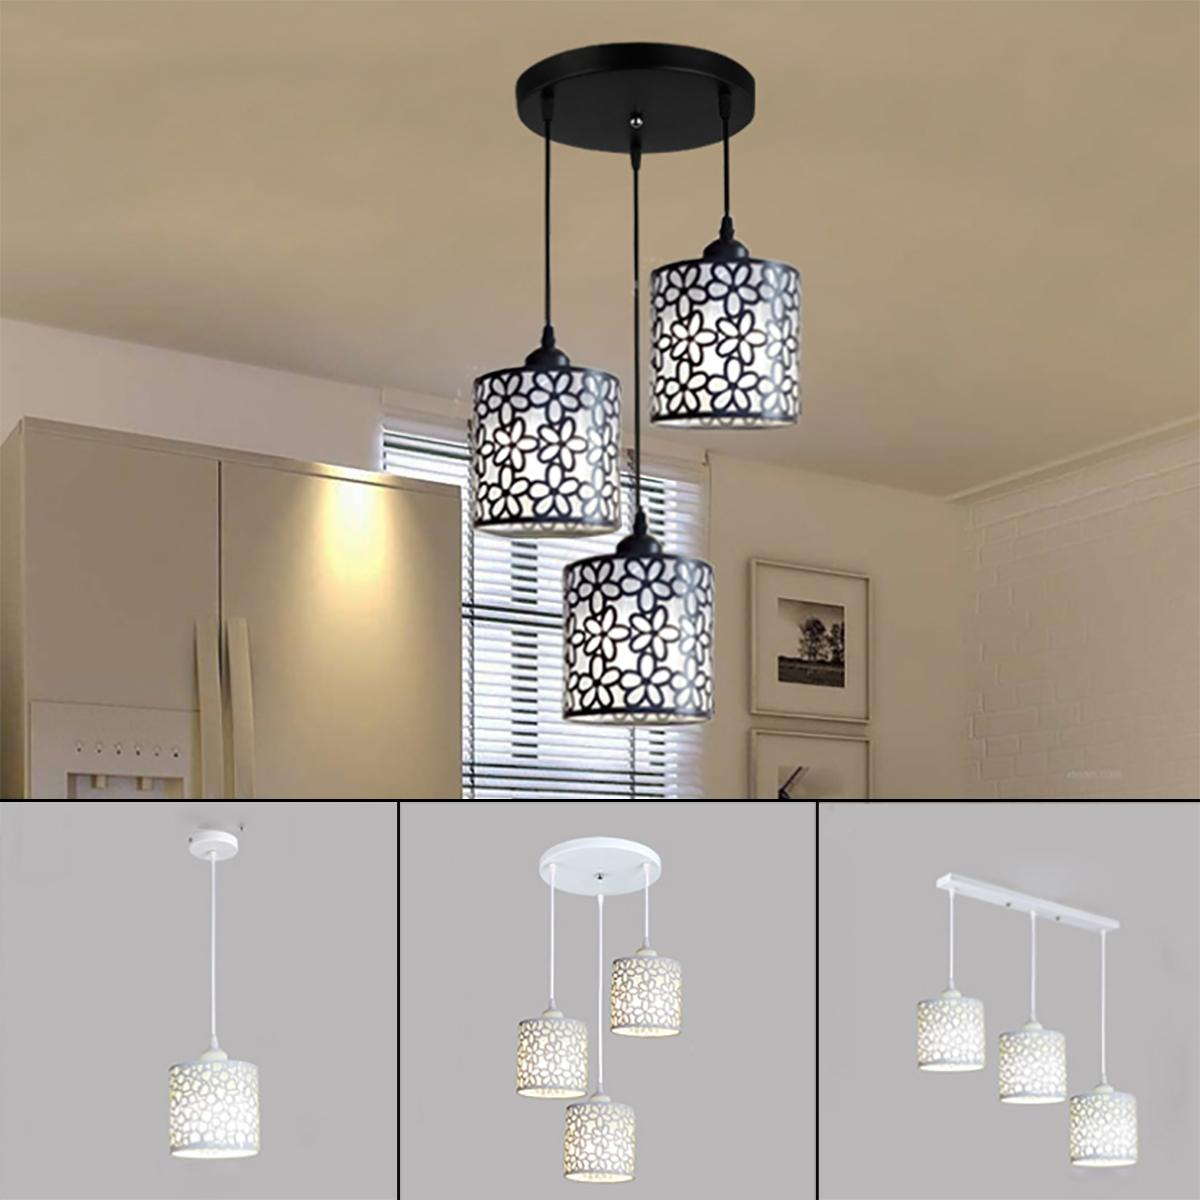 Modern Nordic Pendant Lights Fixtures Iron Hollow Out Chandelier Pendant Lamp Home Decoration For Dining Room Bedroom Shop Bar